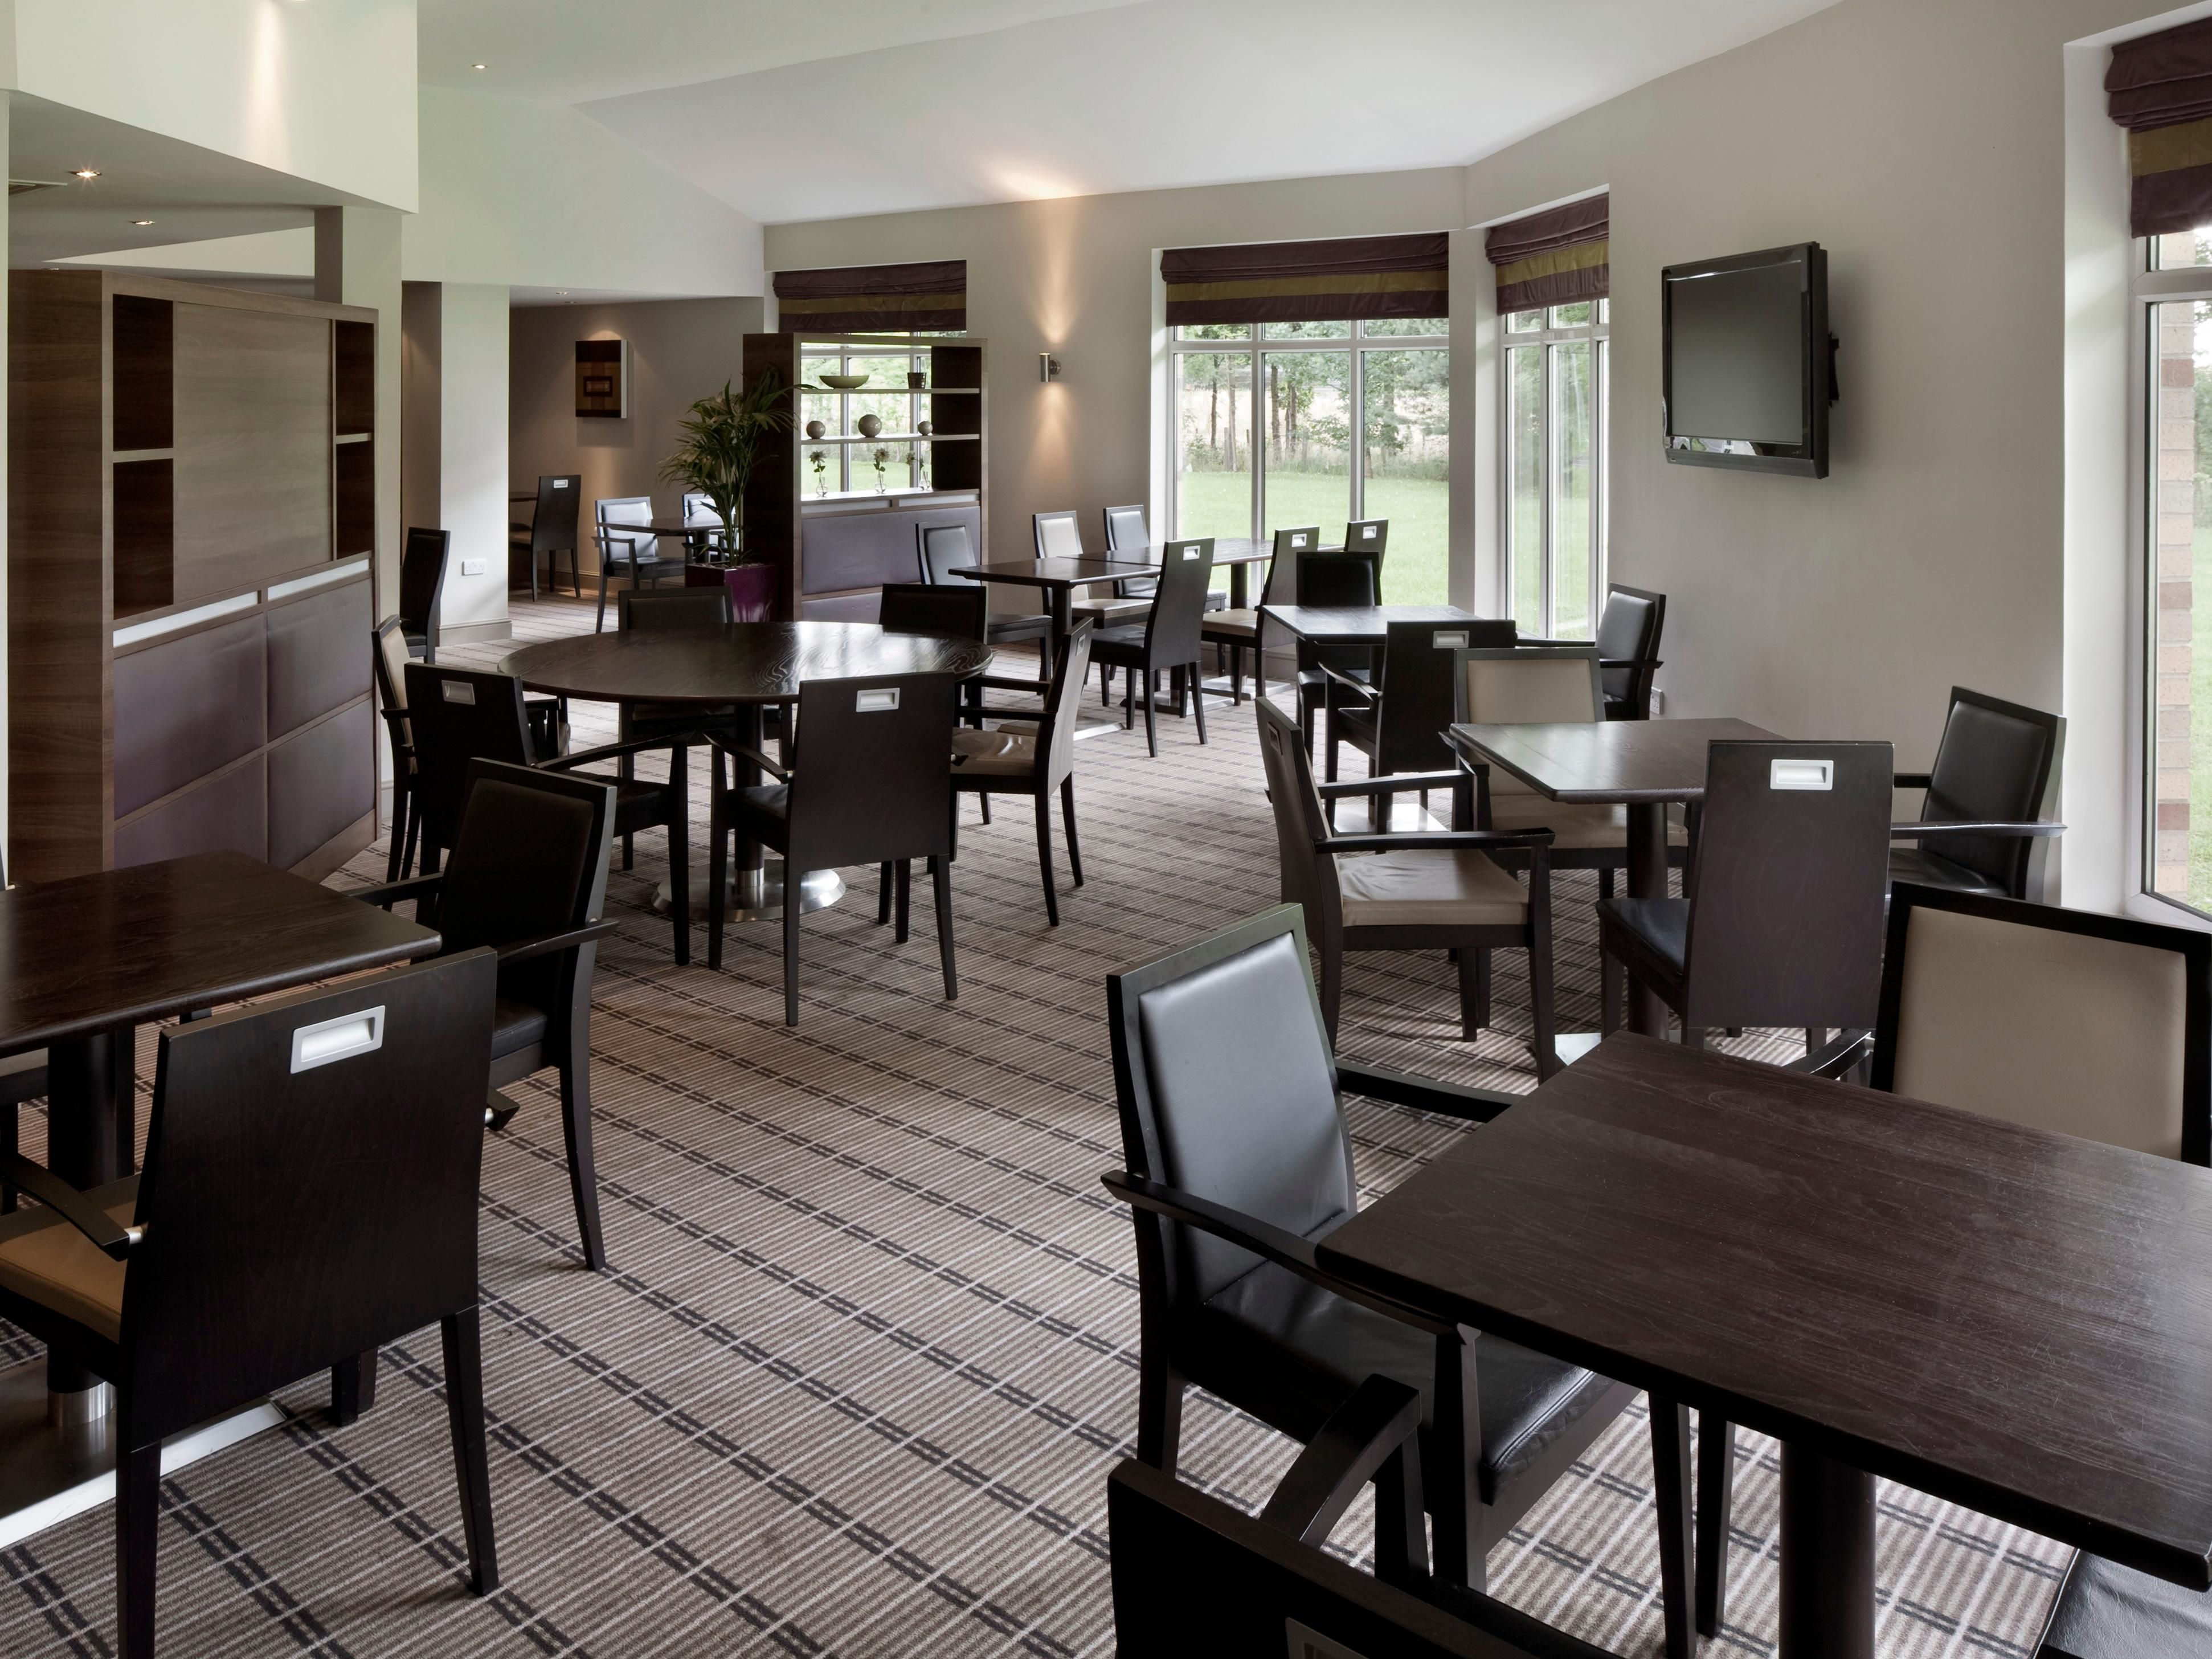 The modern lounge at the Holiday Inn Express hotel in Stirling